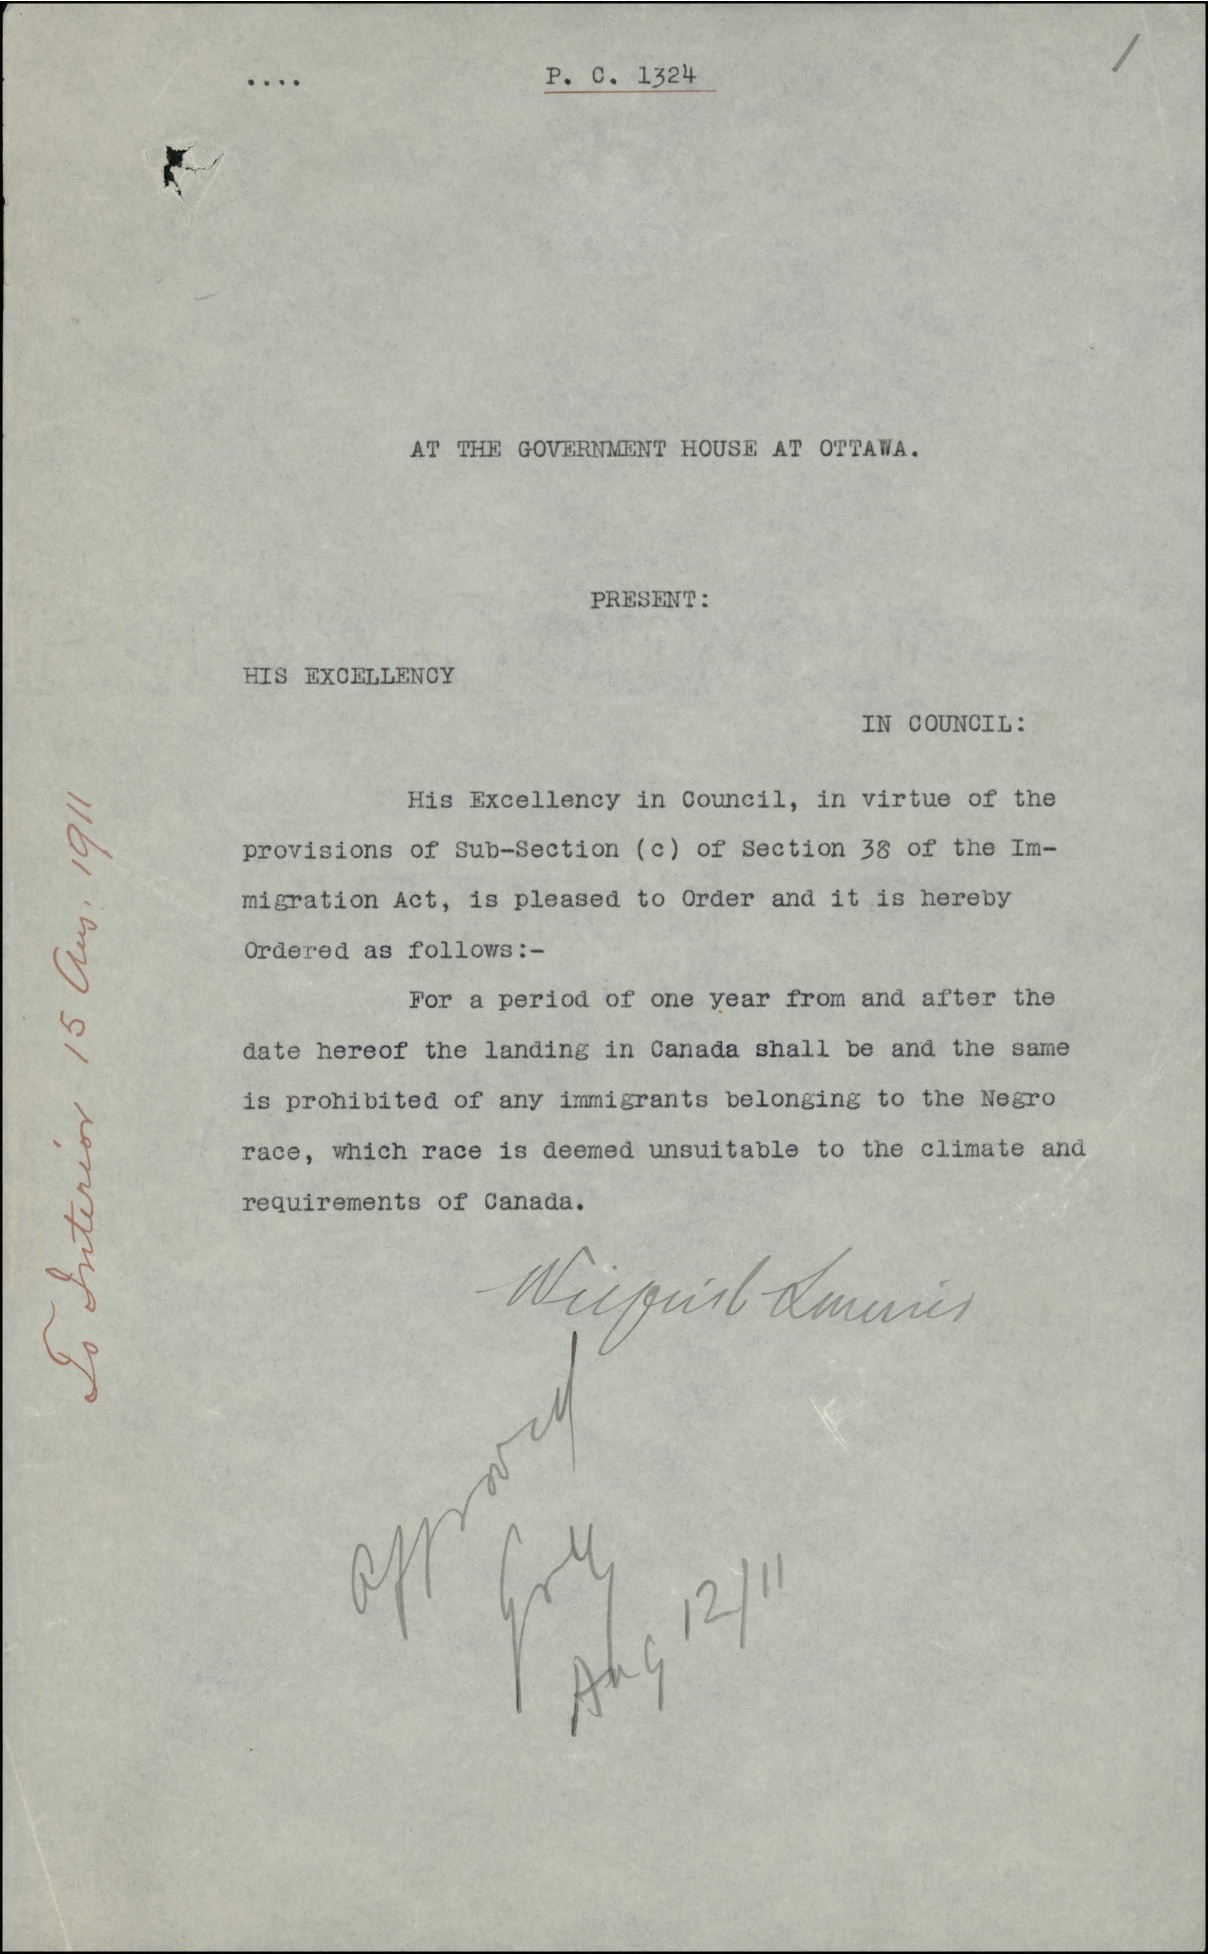 Order-in-Council P.C. 1911-1324 — the Proposed Ban on Black Immigration to Canada